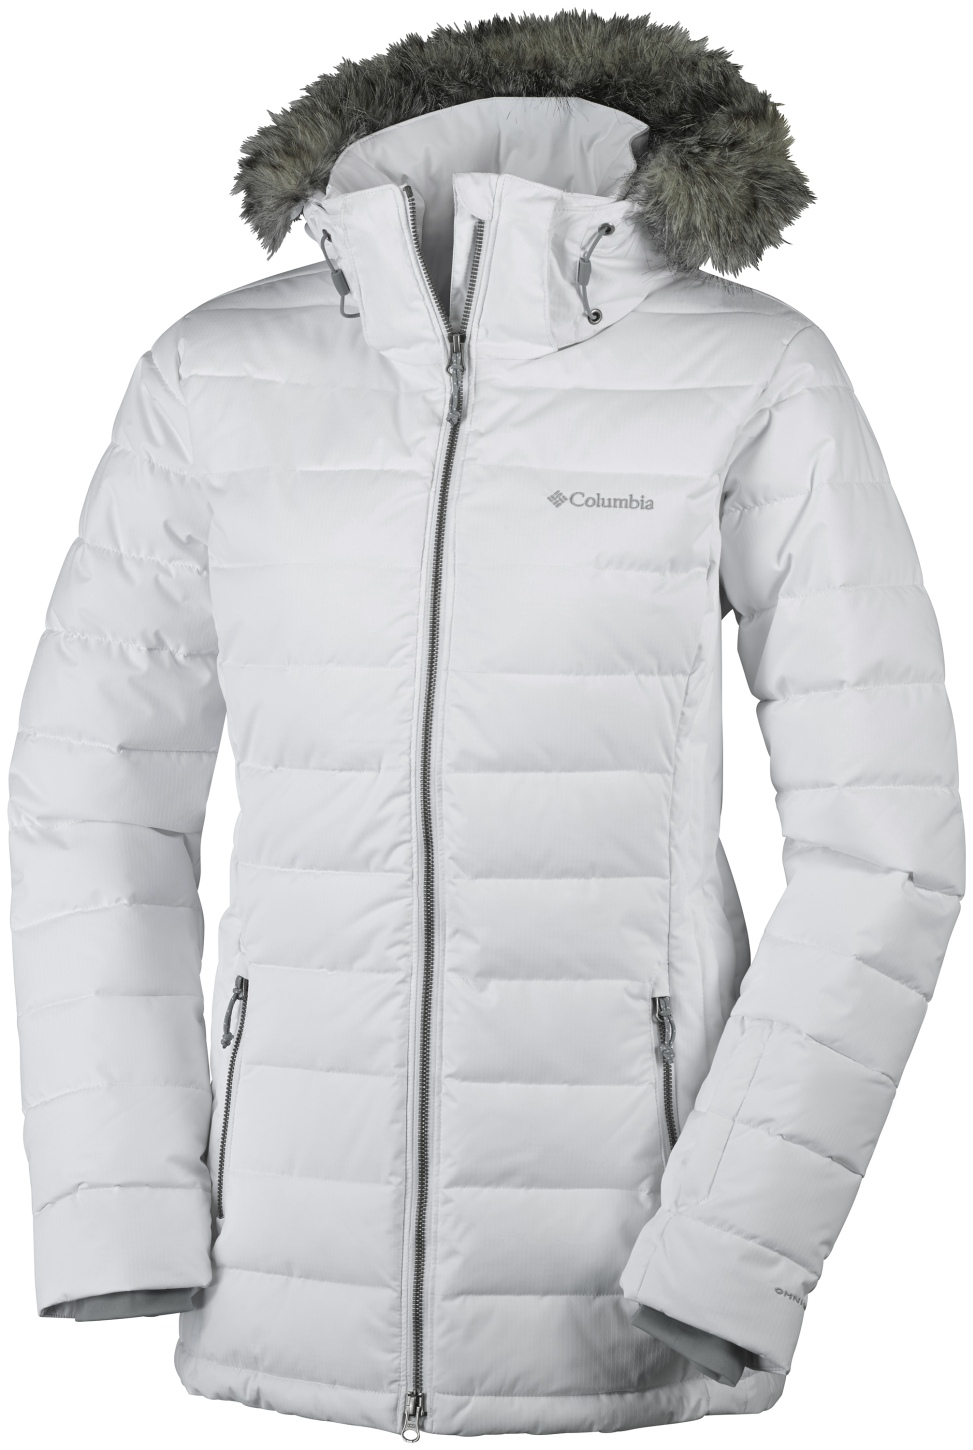 Columbia Women's Ponderay Ski Jacket White-30